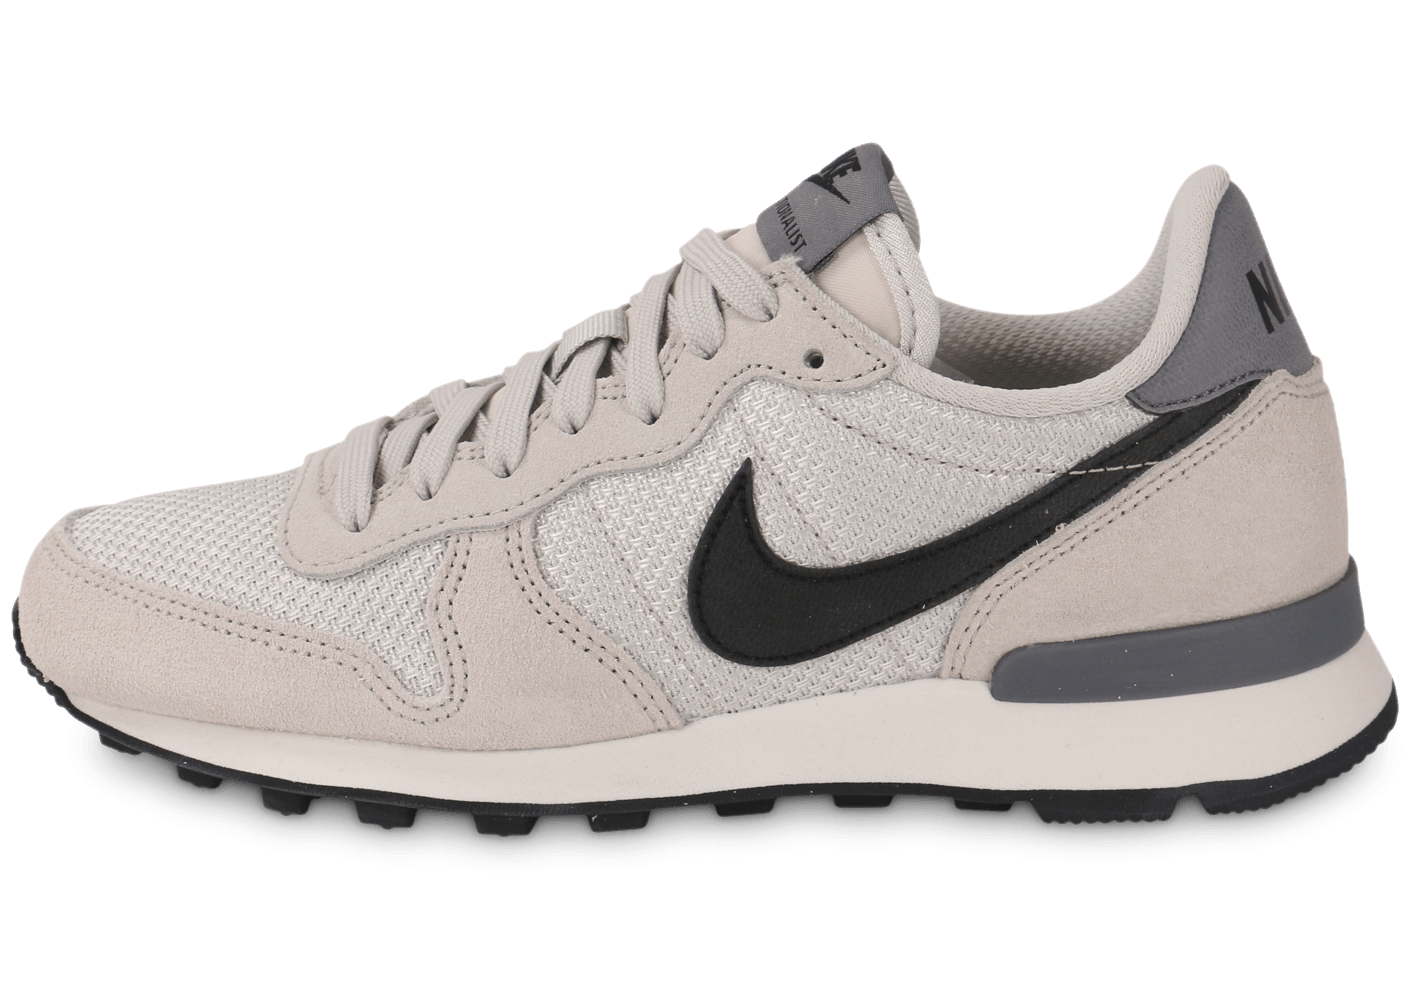 Nike Internationalist Grise Chaussures Chaussures Chausport Chausport Chaussures 89052c